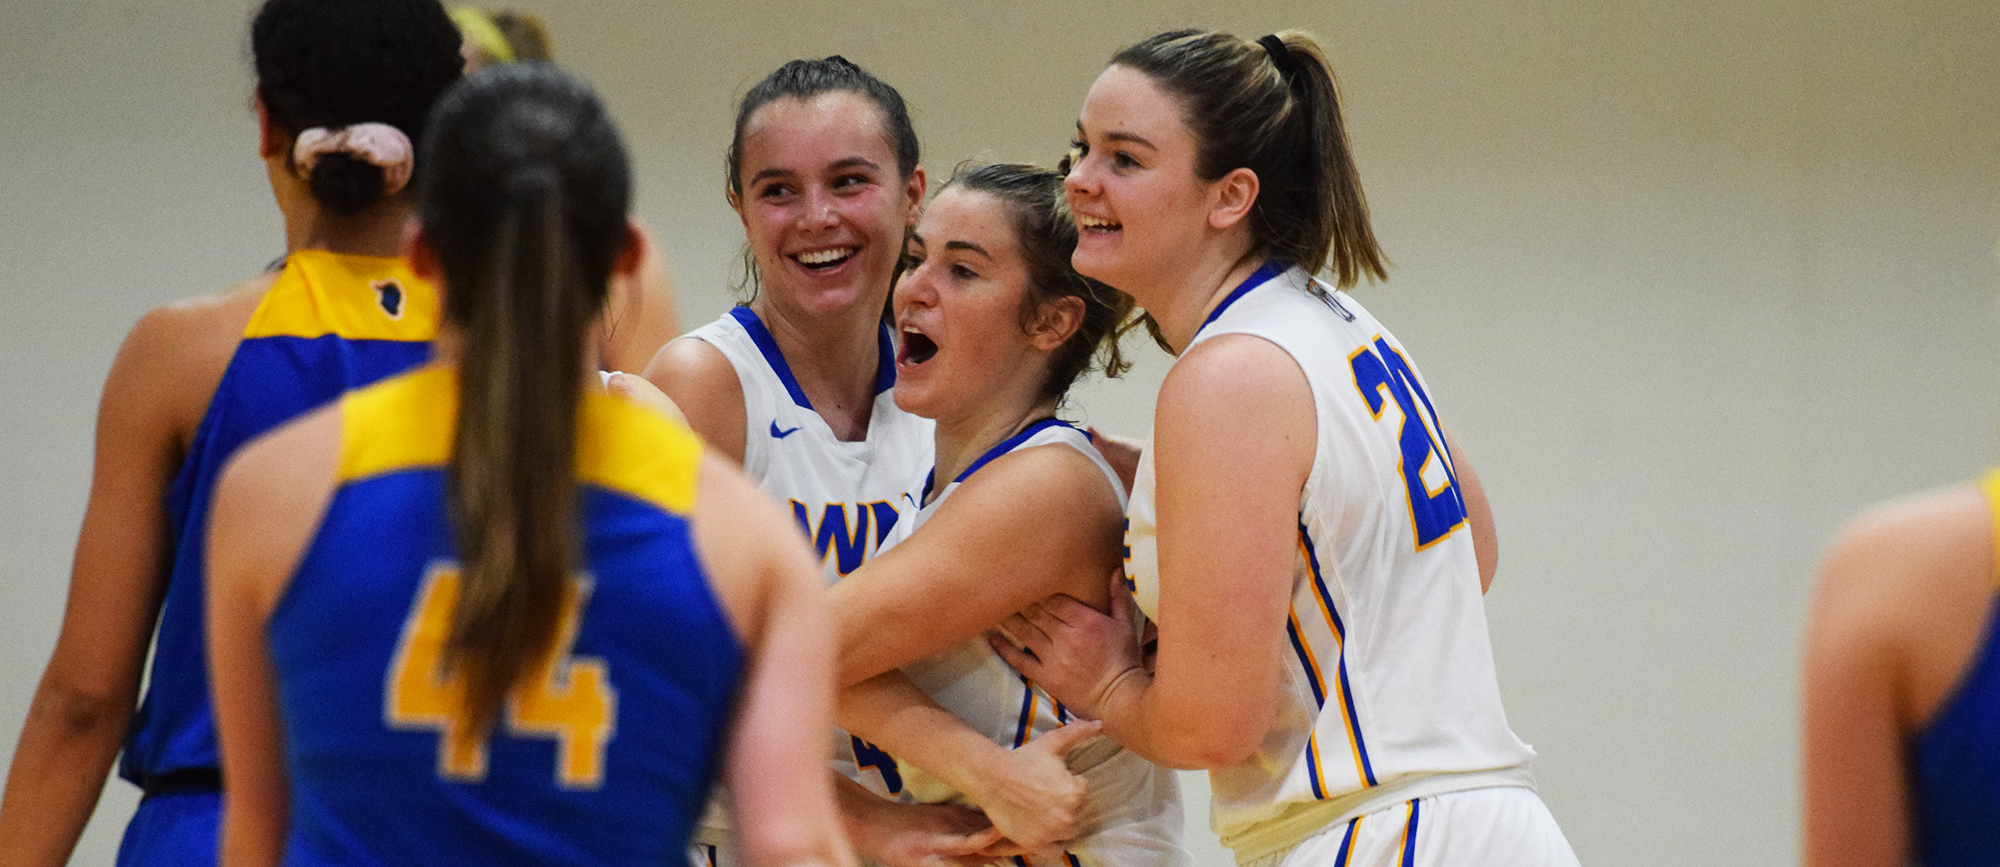 Western New England defeated Worcester State for the third time in the last four seasons on Lauren Chadwick's (middle) clutch jumper. (Photo by Rachael Margossian)